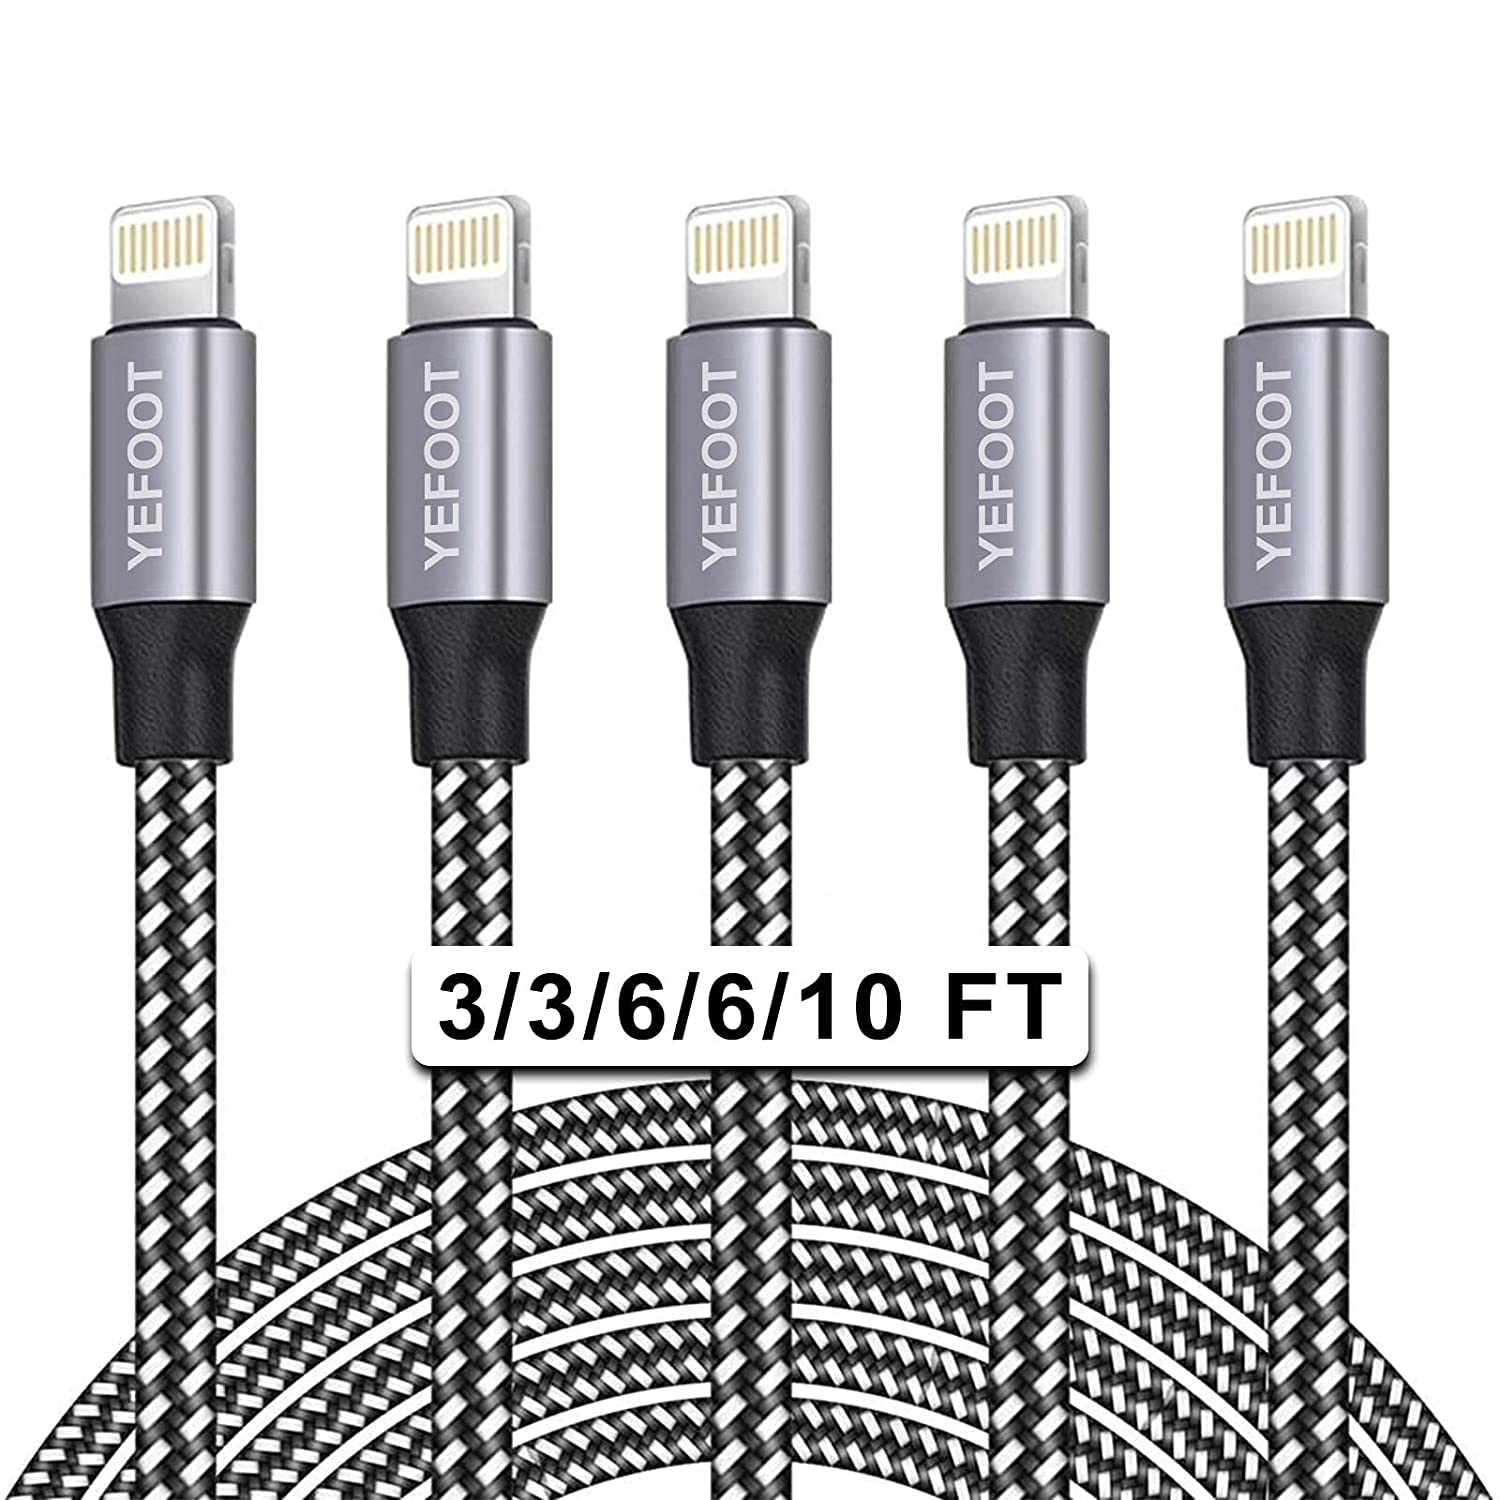 iPhone Charger, YEFOOT [MFi Certified] Cable 5Pack (3/3/6/6/10FT) Charger USB Cable Compatible iPhone 12Pro Max/12Pro/12/11/Pro/Xs Max/X/8 and More-Black&White